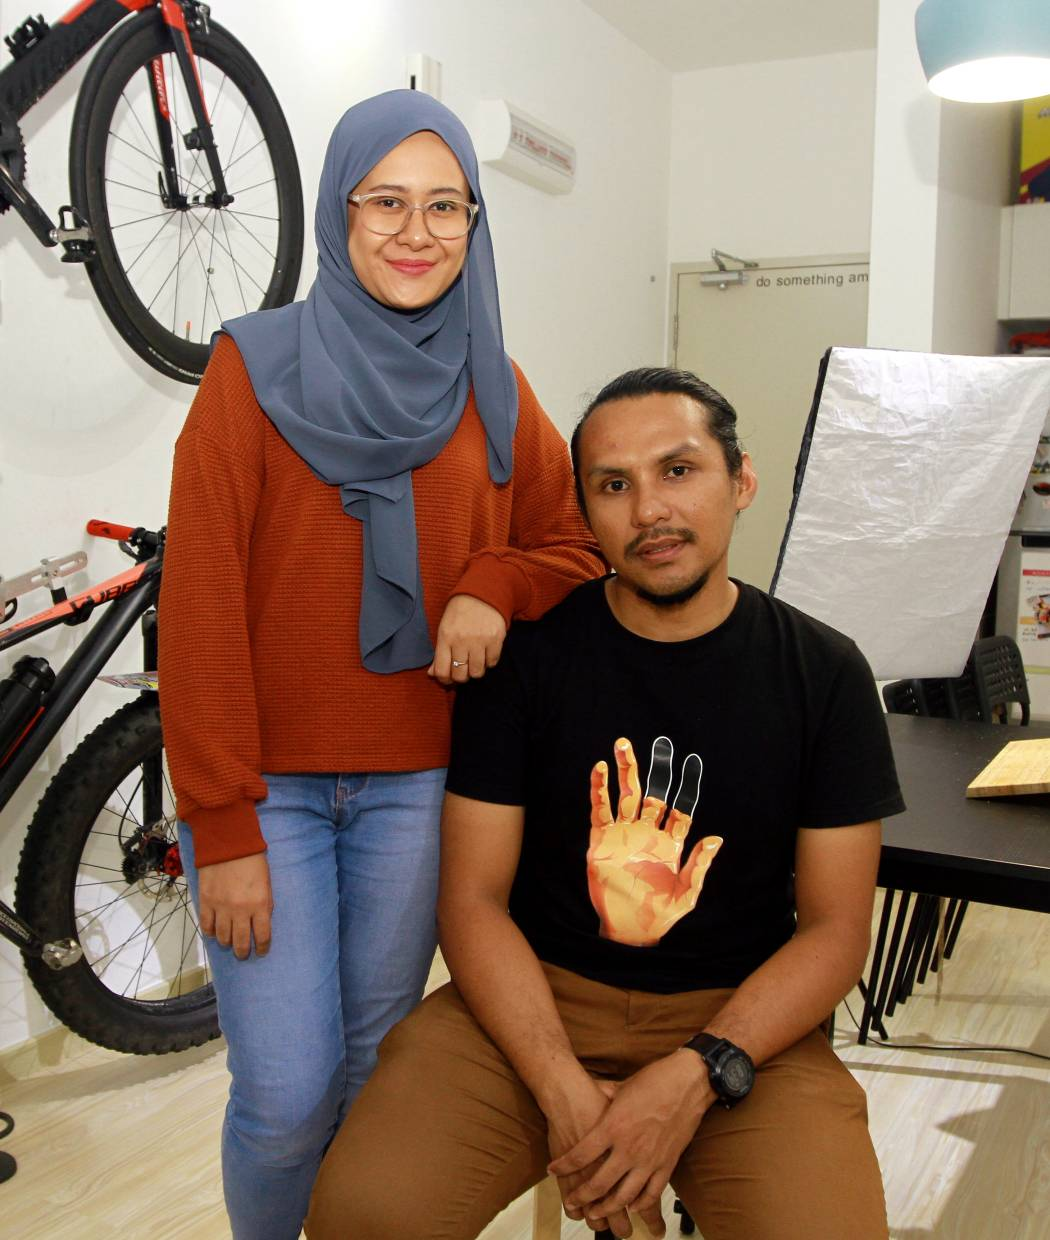 Isaac's wife Izzati Mazlan is very supportive of his side career and often helps him film when they go overseas.